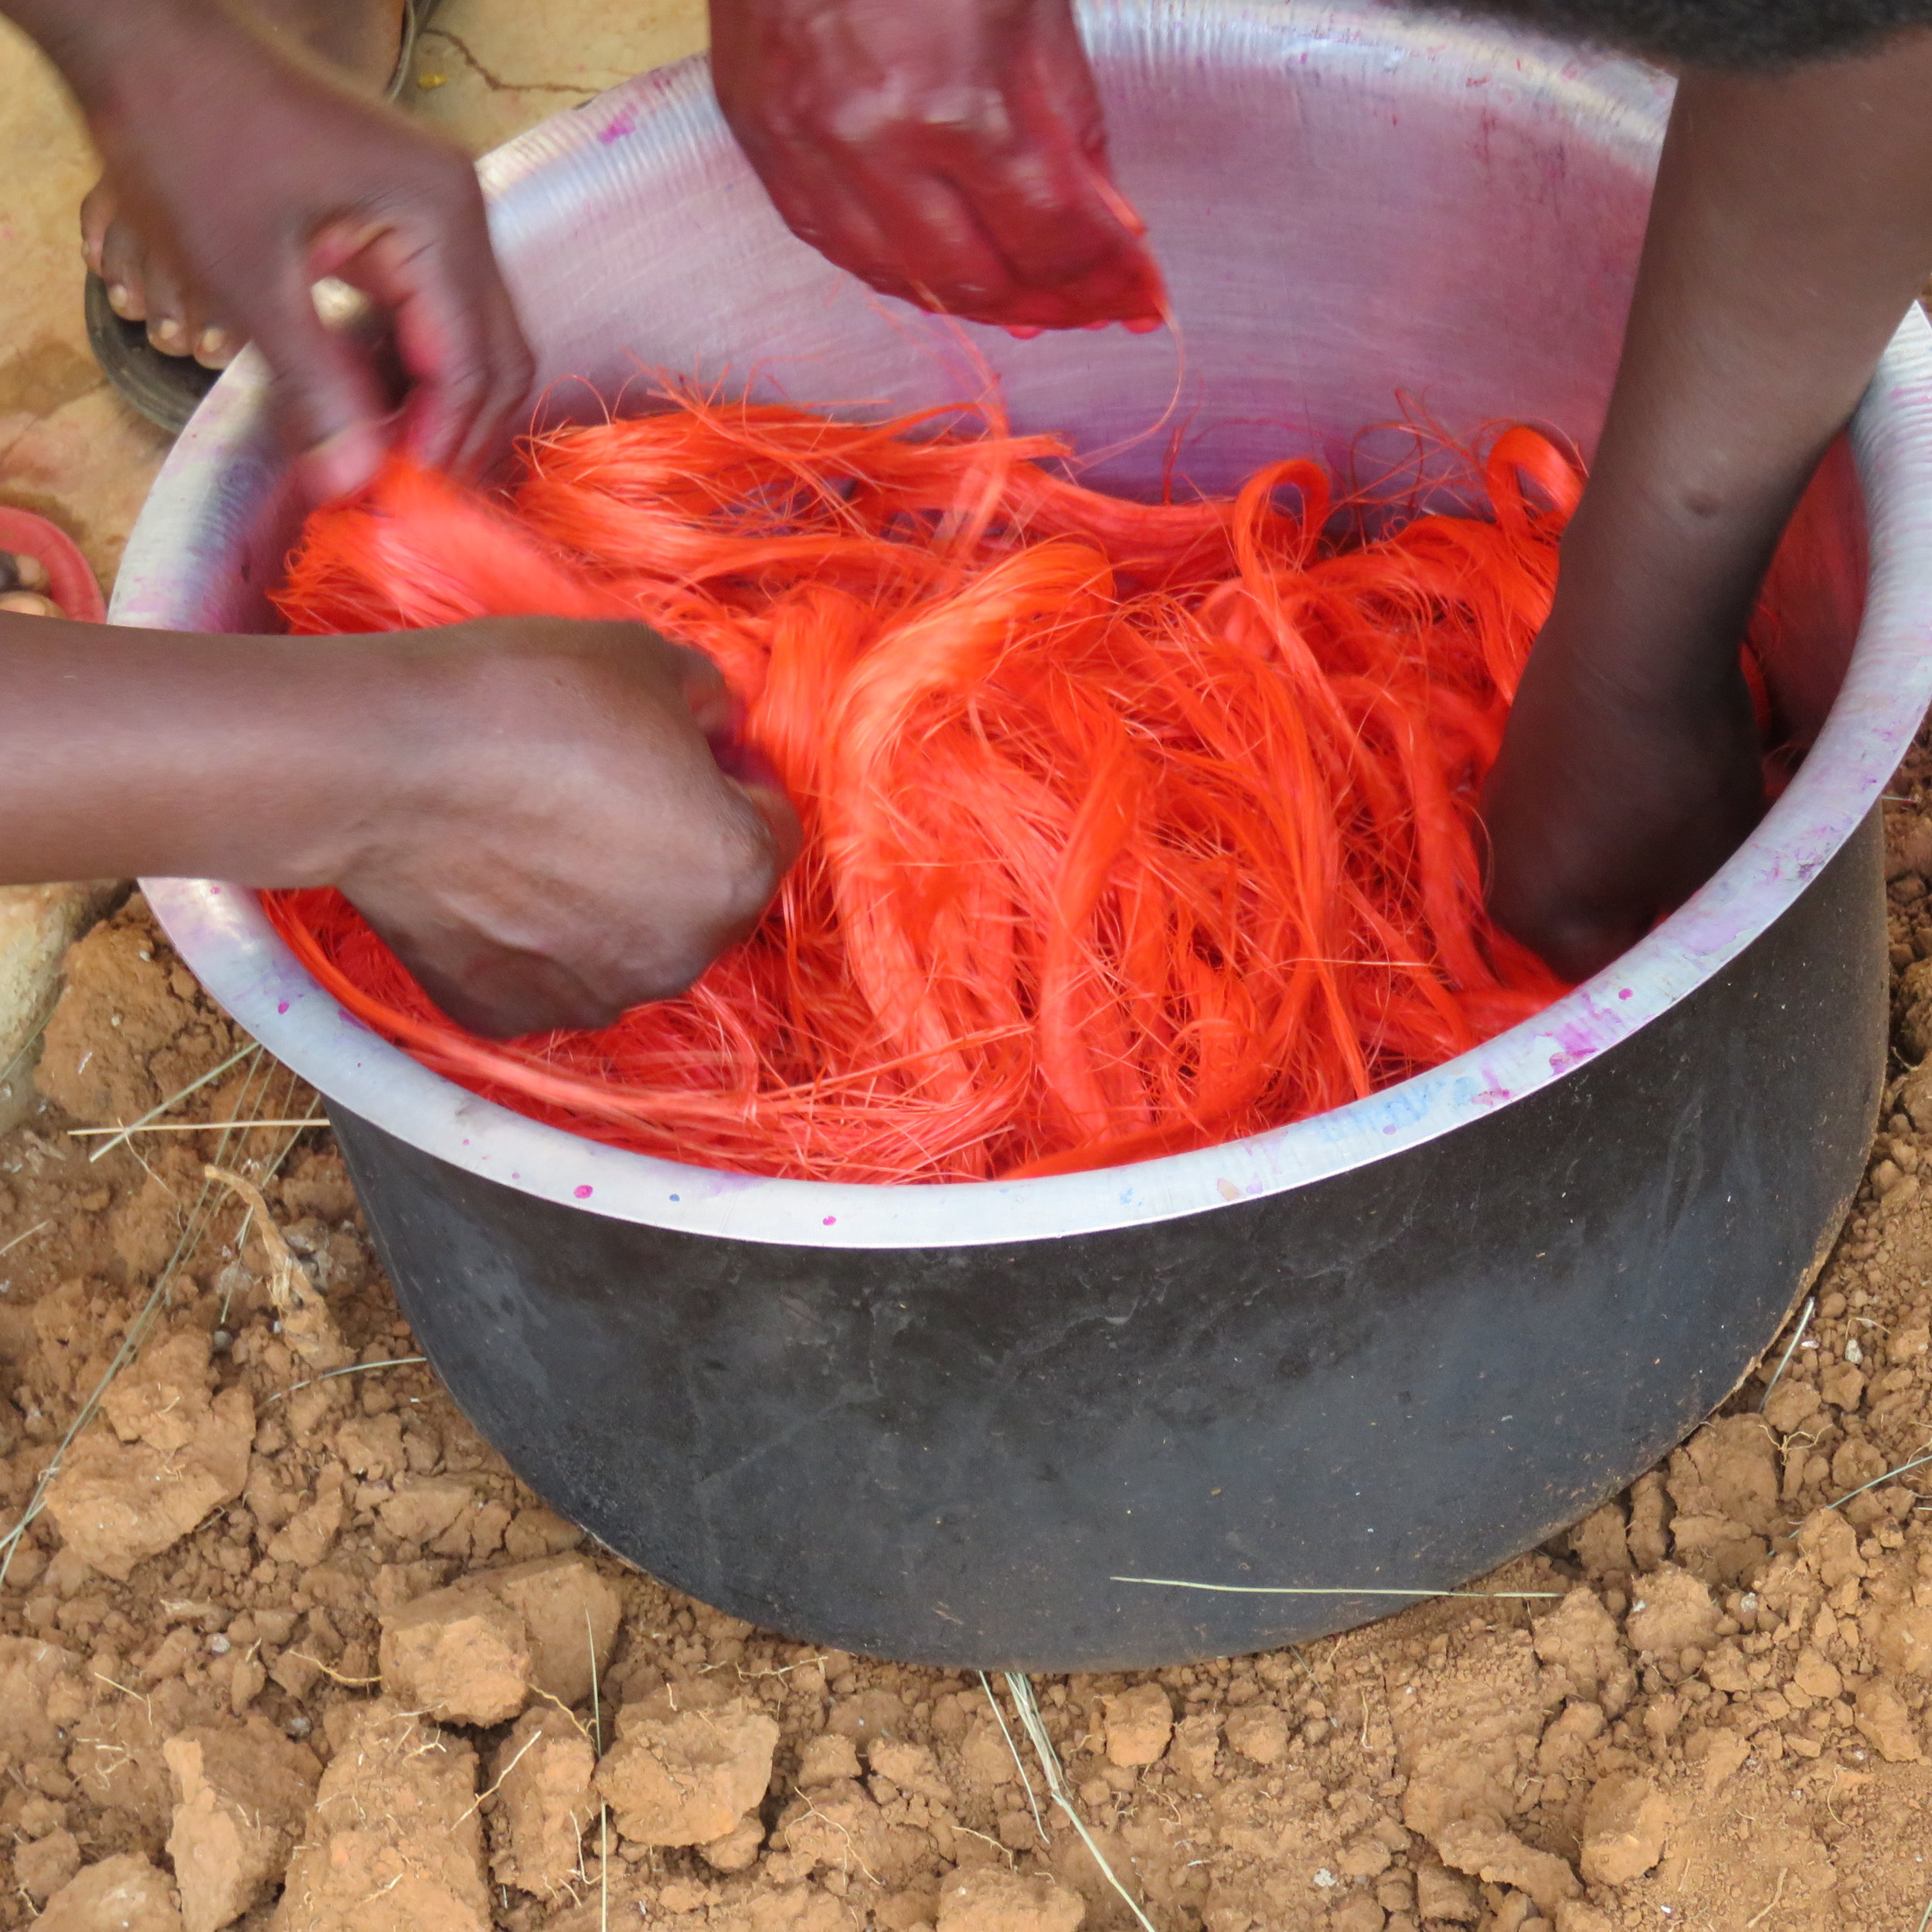 Figure 5: Stirring the fiber into the orange-coloring solution.